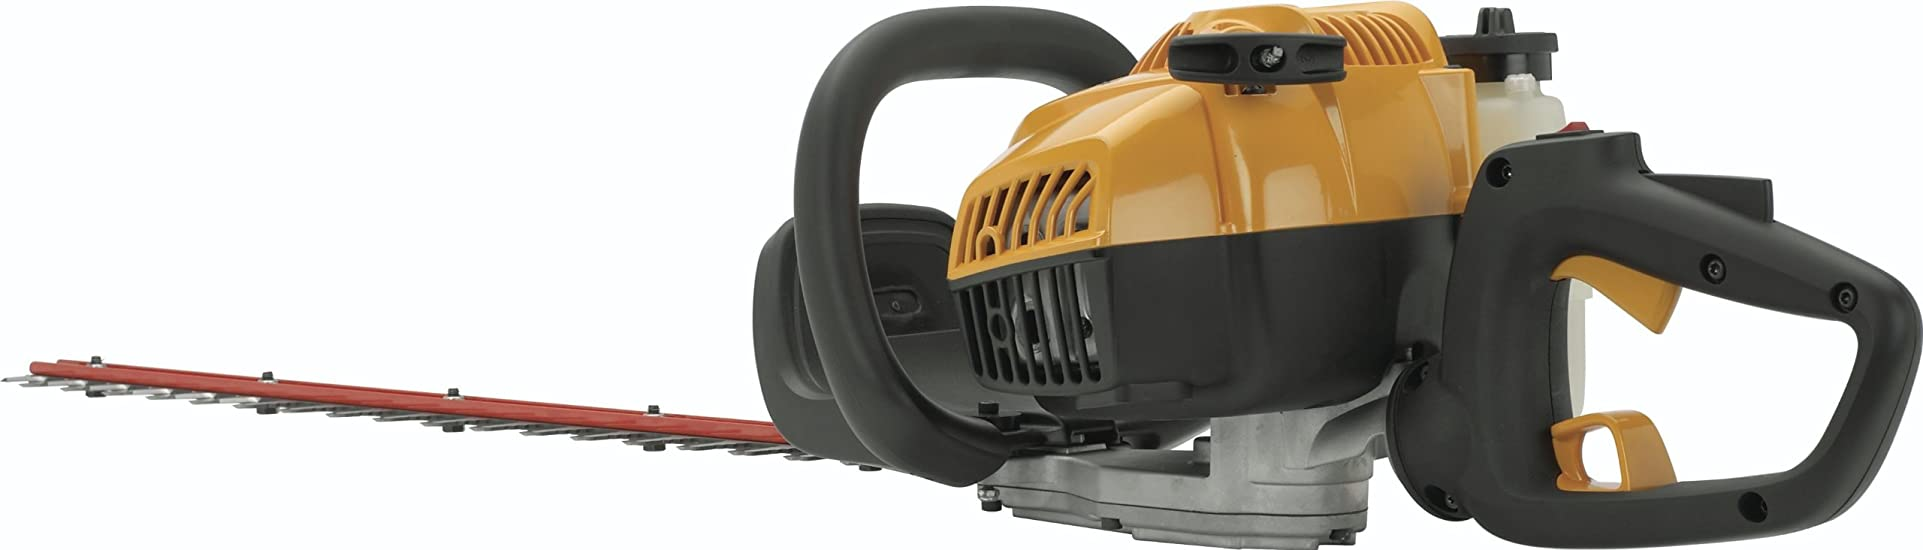 Poulan Pro PP2822 Hedge Trimmer Review